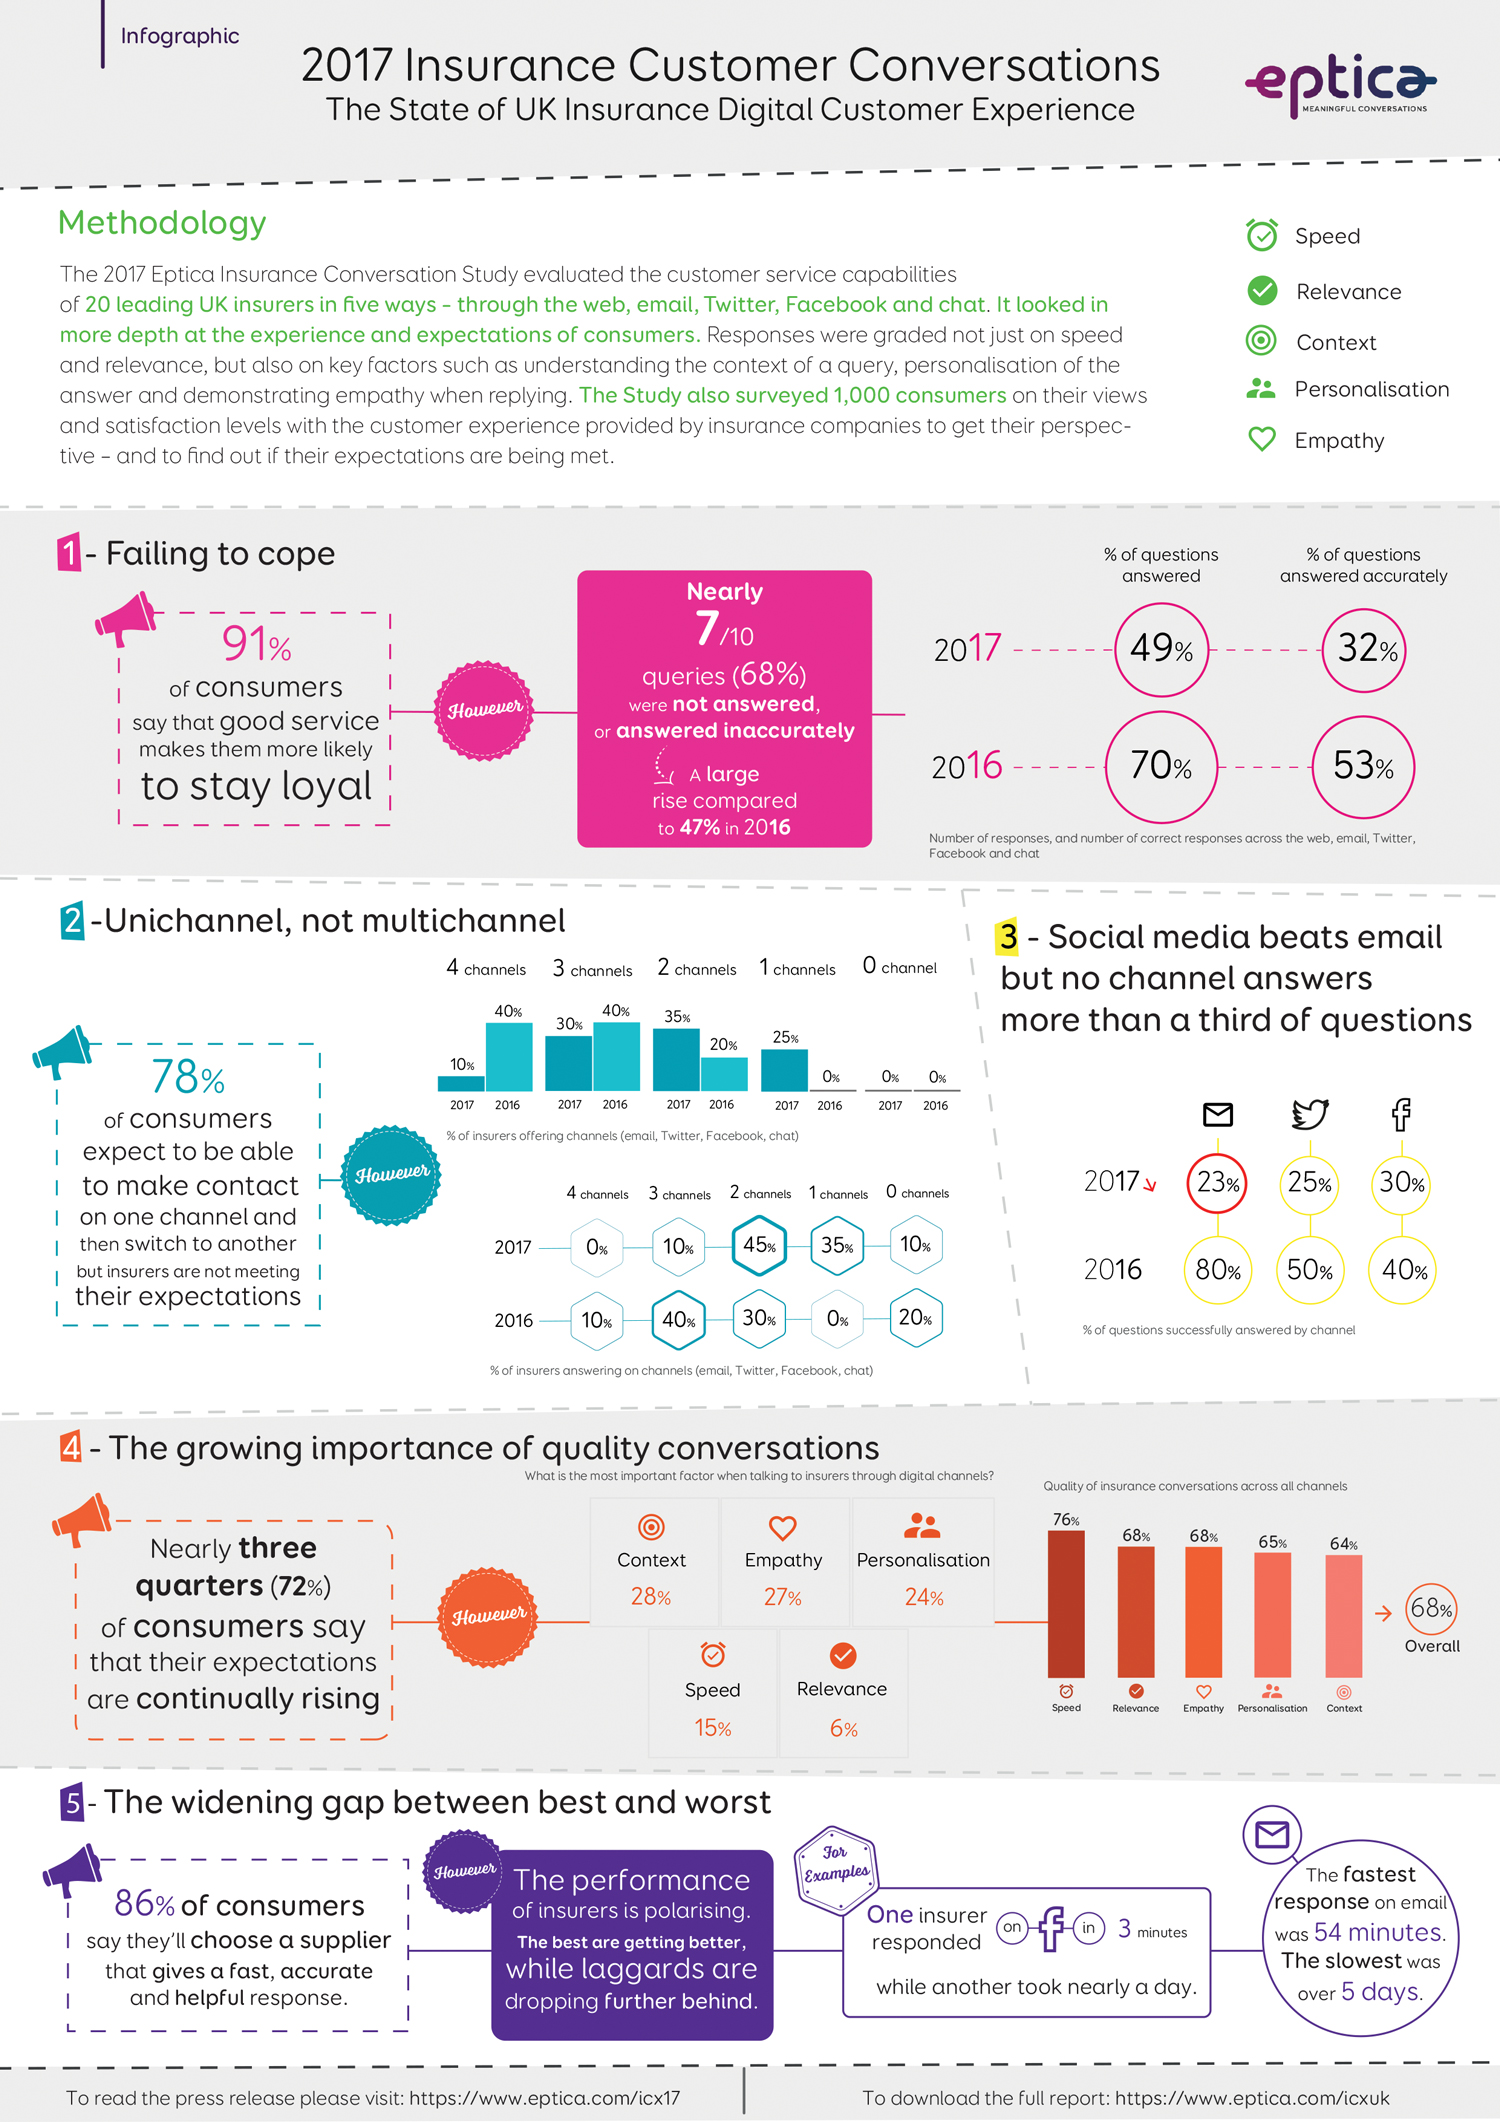 Eptica 2017 UK Insurance Customer Conversations Infographic